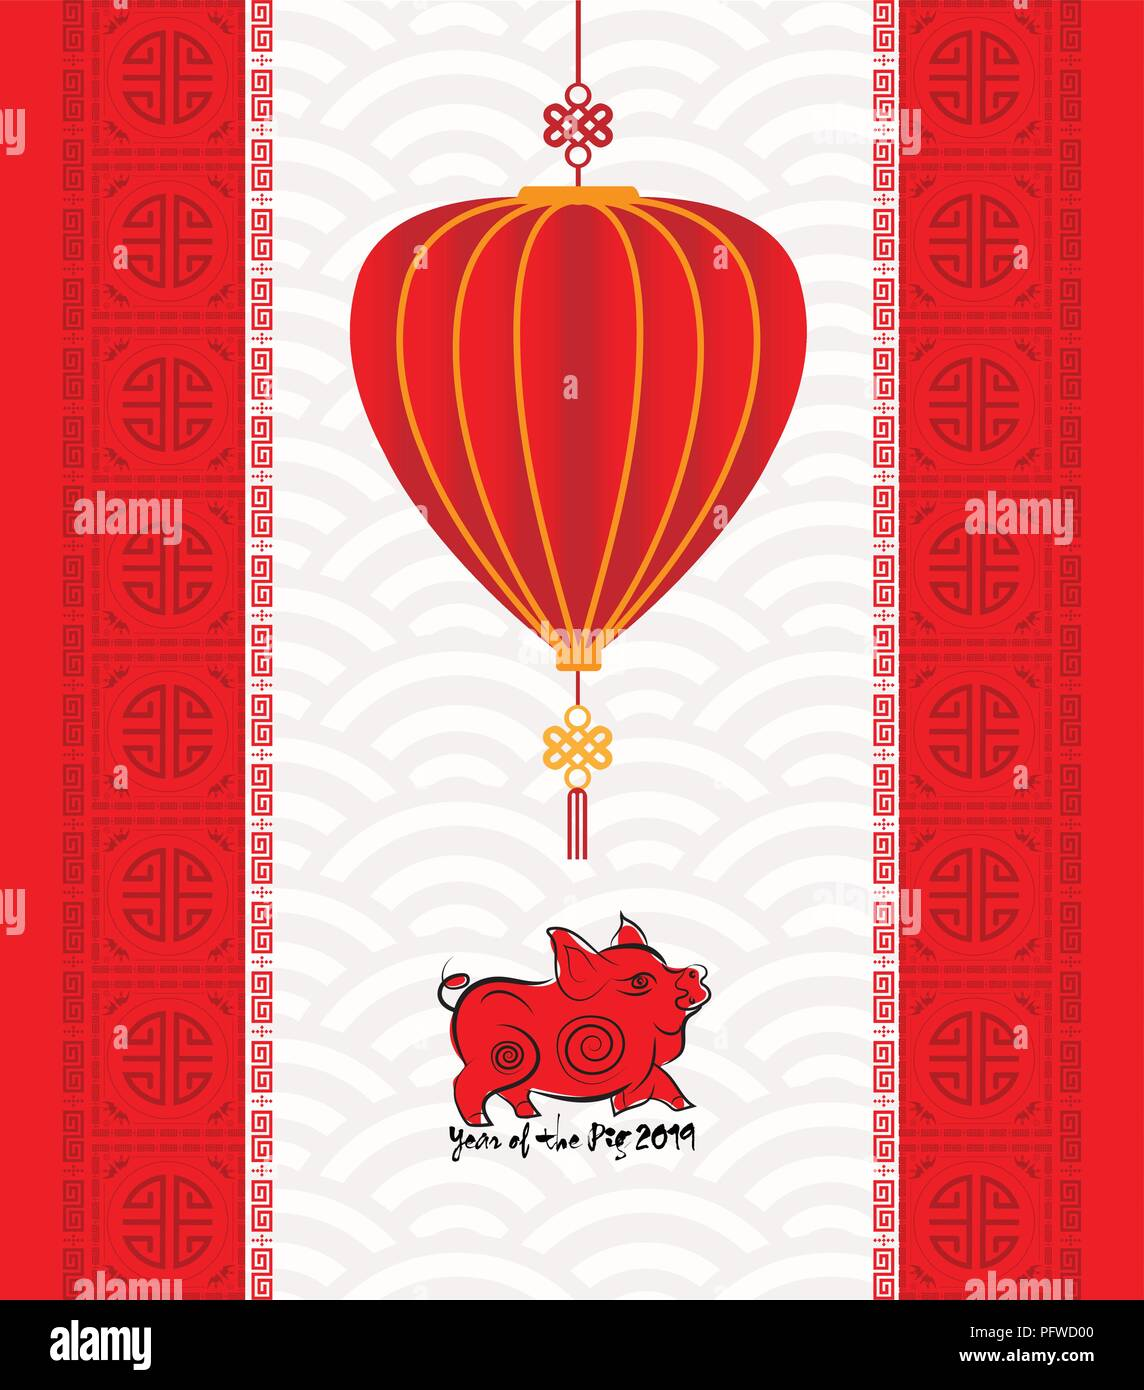 chinese new year background year of the pig